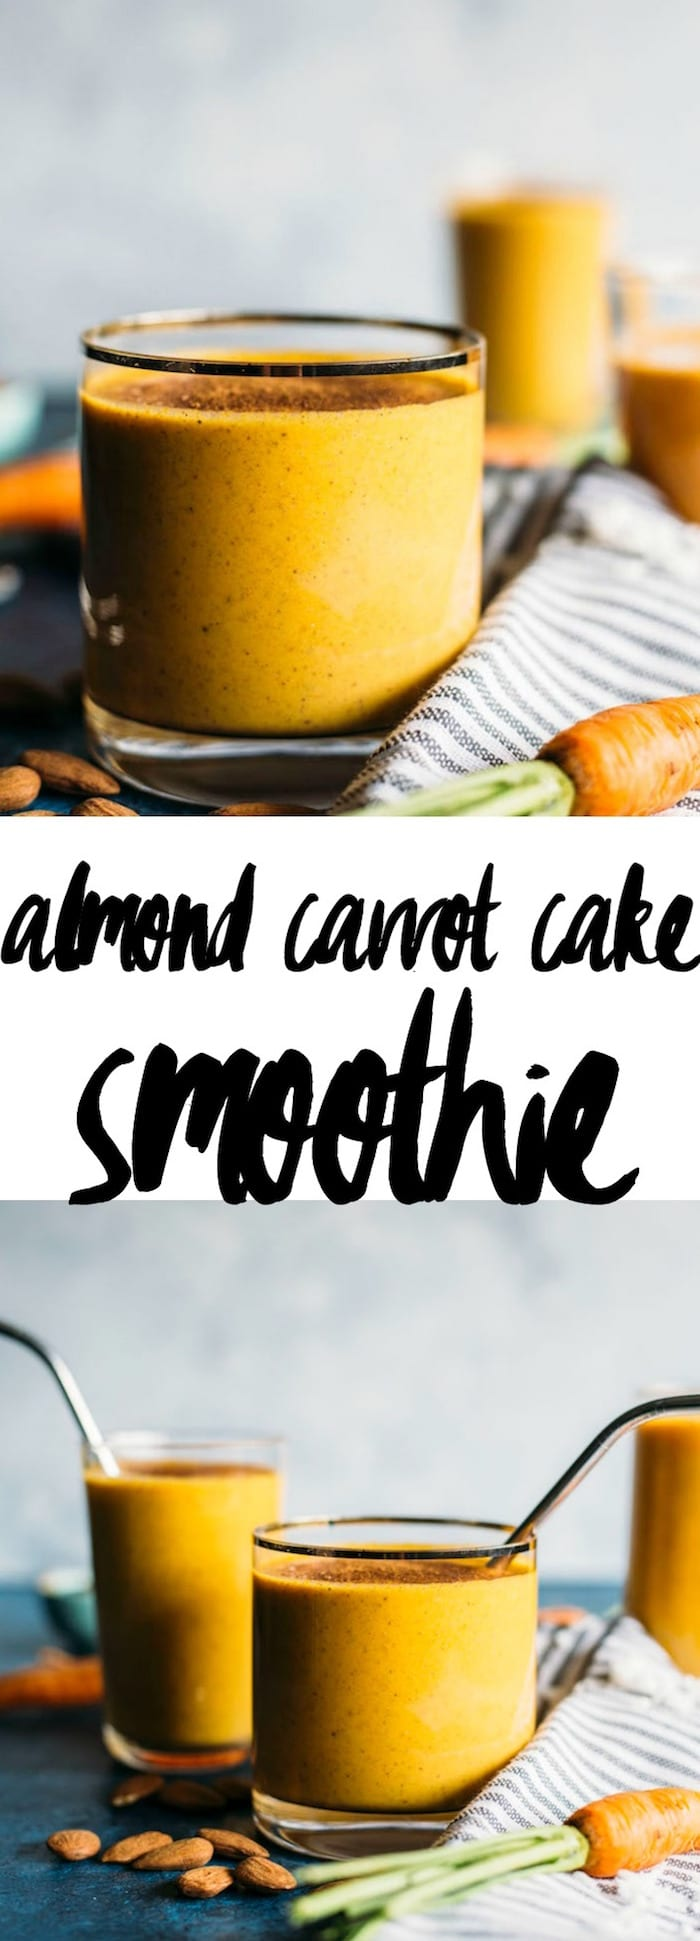 Almond Carrot Cake Smoothie | A healthy, dairy free smoothie that tastes like carrot cake with a hint of almond!